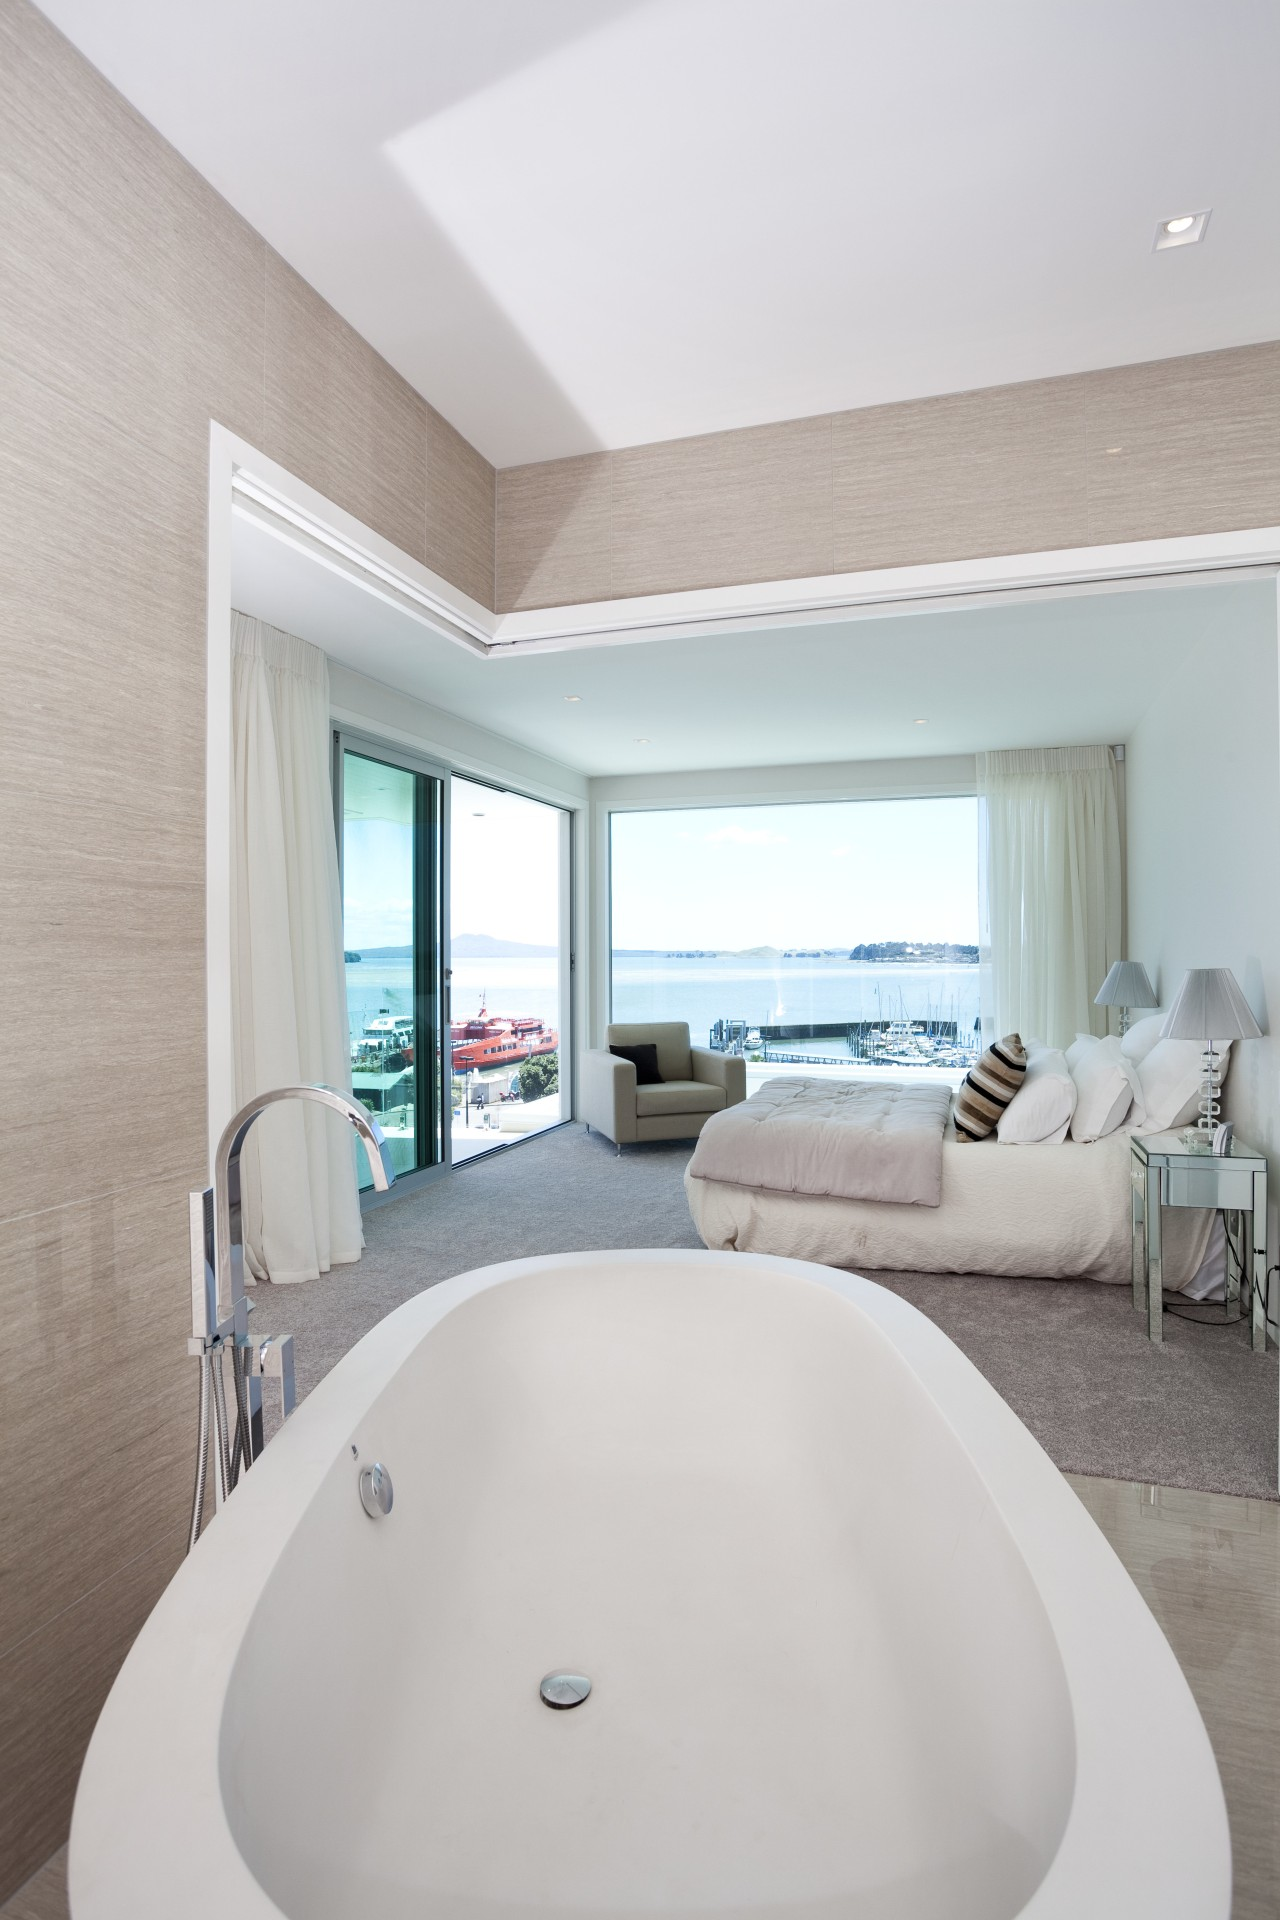 View of contemporary white tub in open plan architecture, bathroom, bathtub, daylighting, estate, floor, home, interior design, plumbing fixture, real estate, room, suite, gray, white